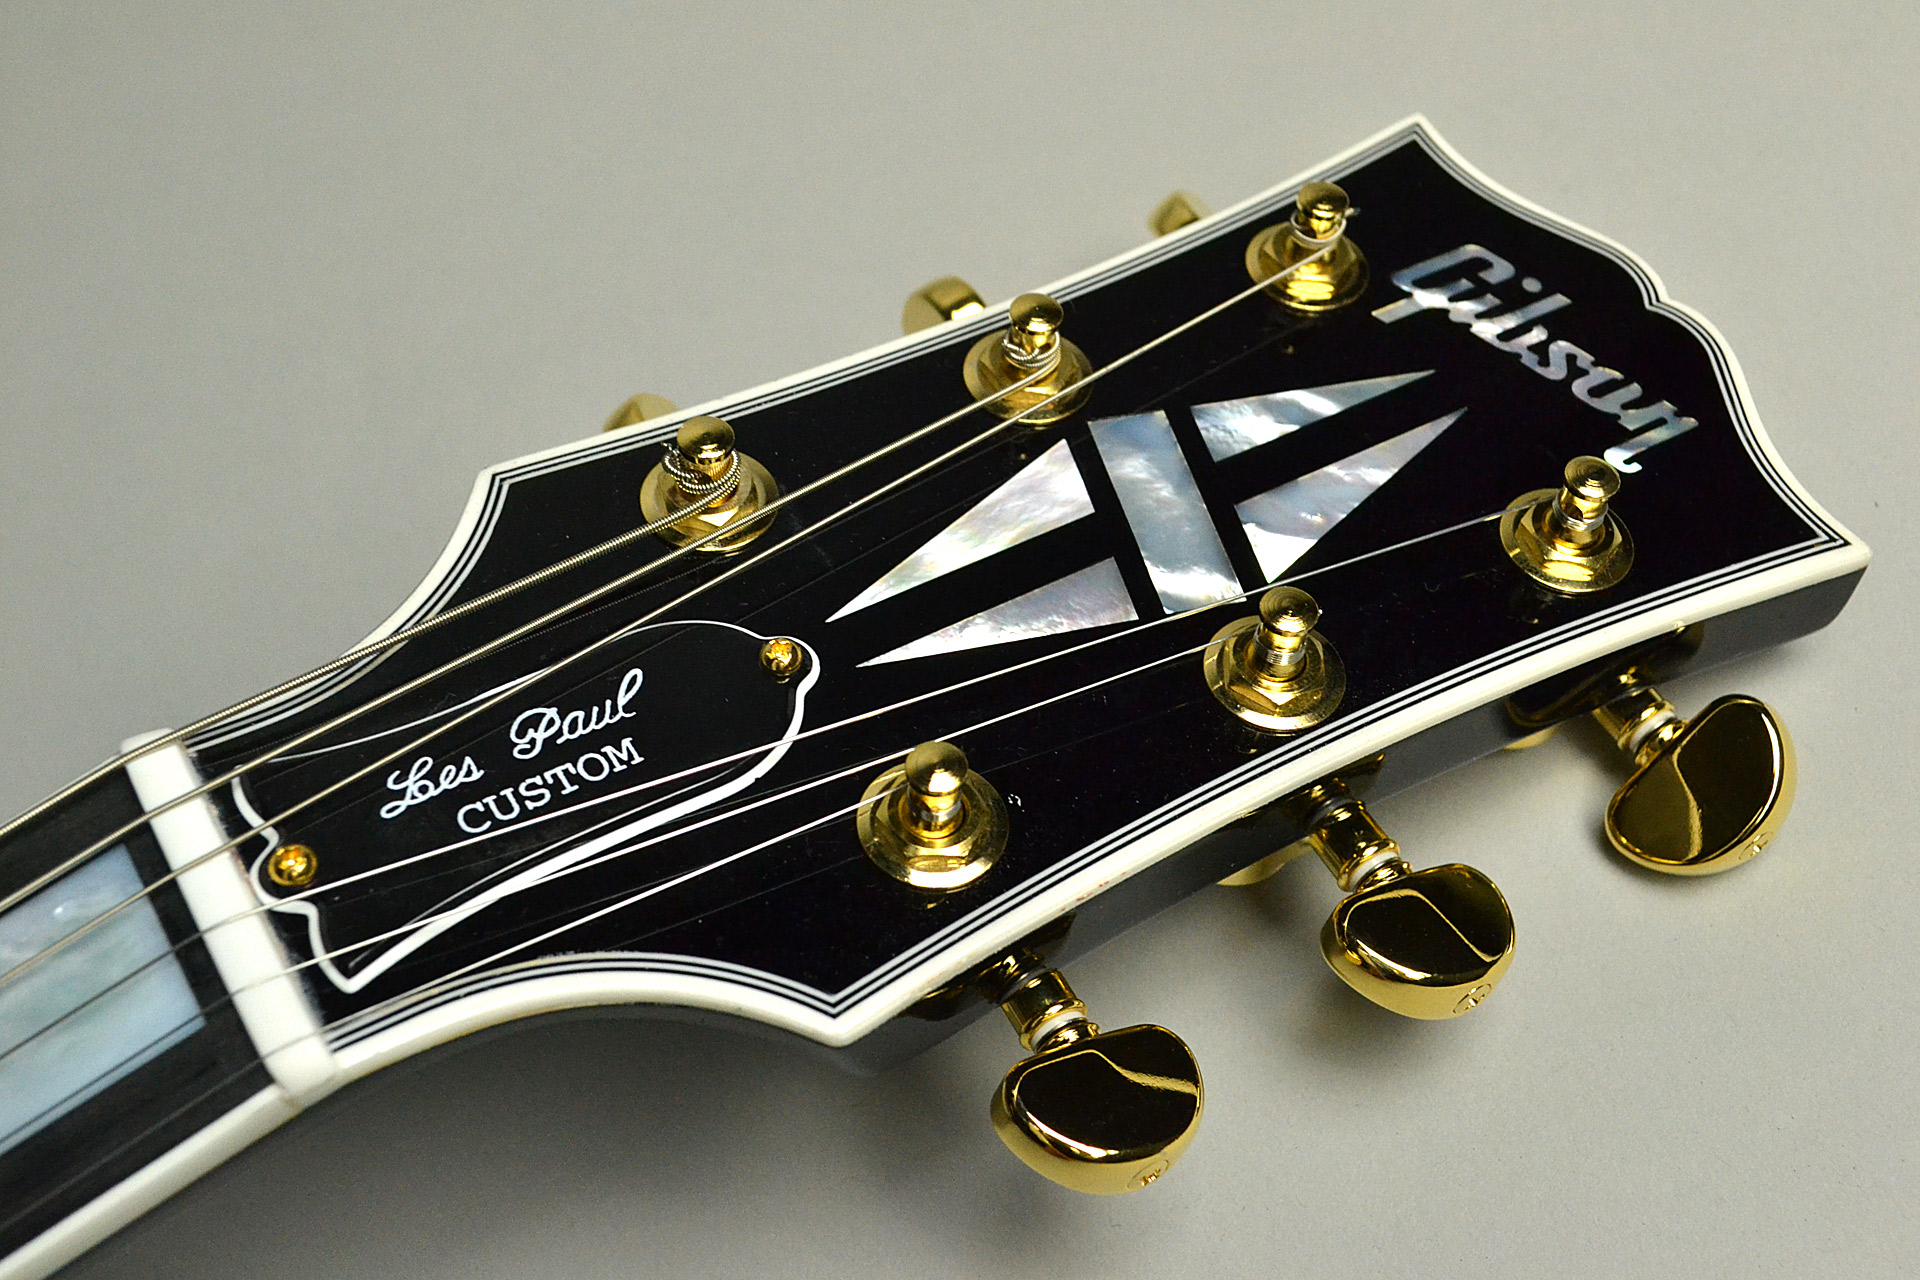 Les Paul Custom 2018 Ebonyのヘッド画像